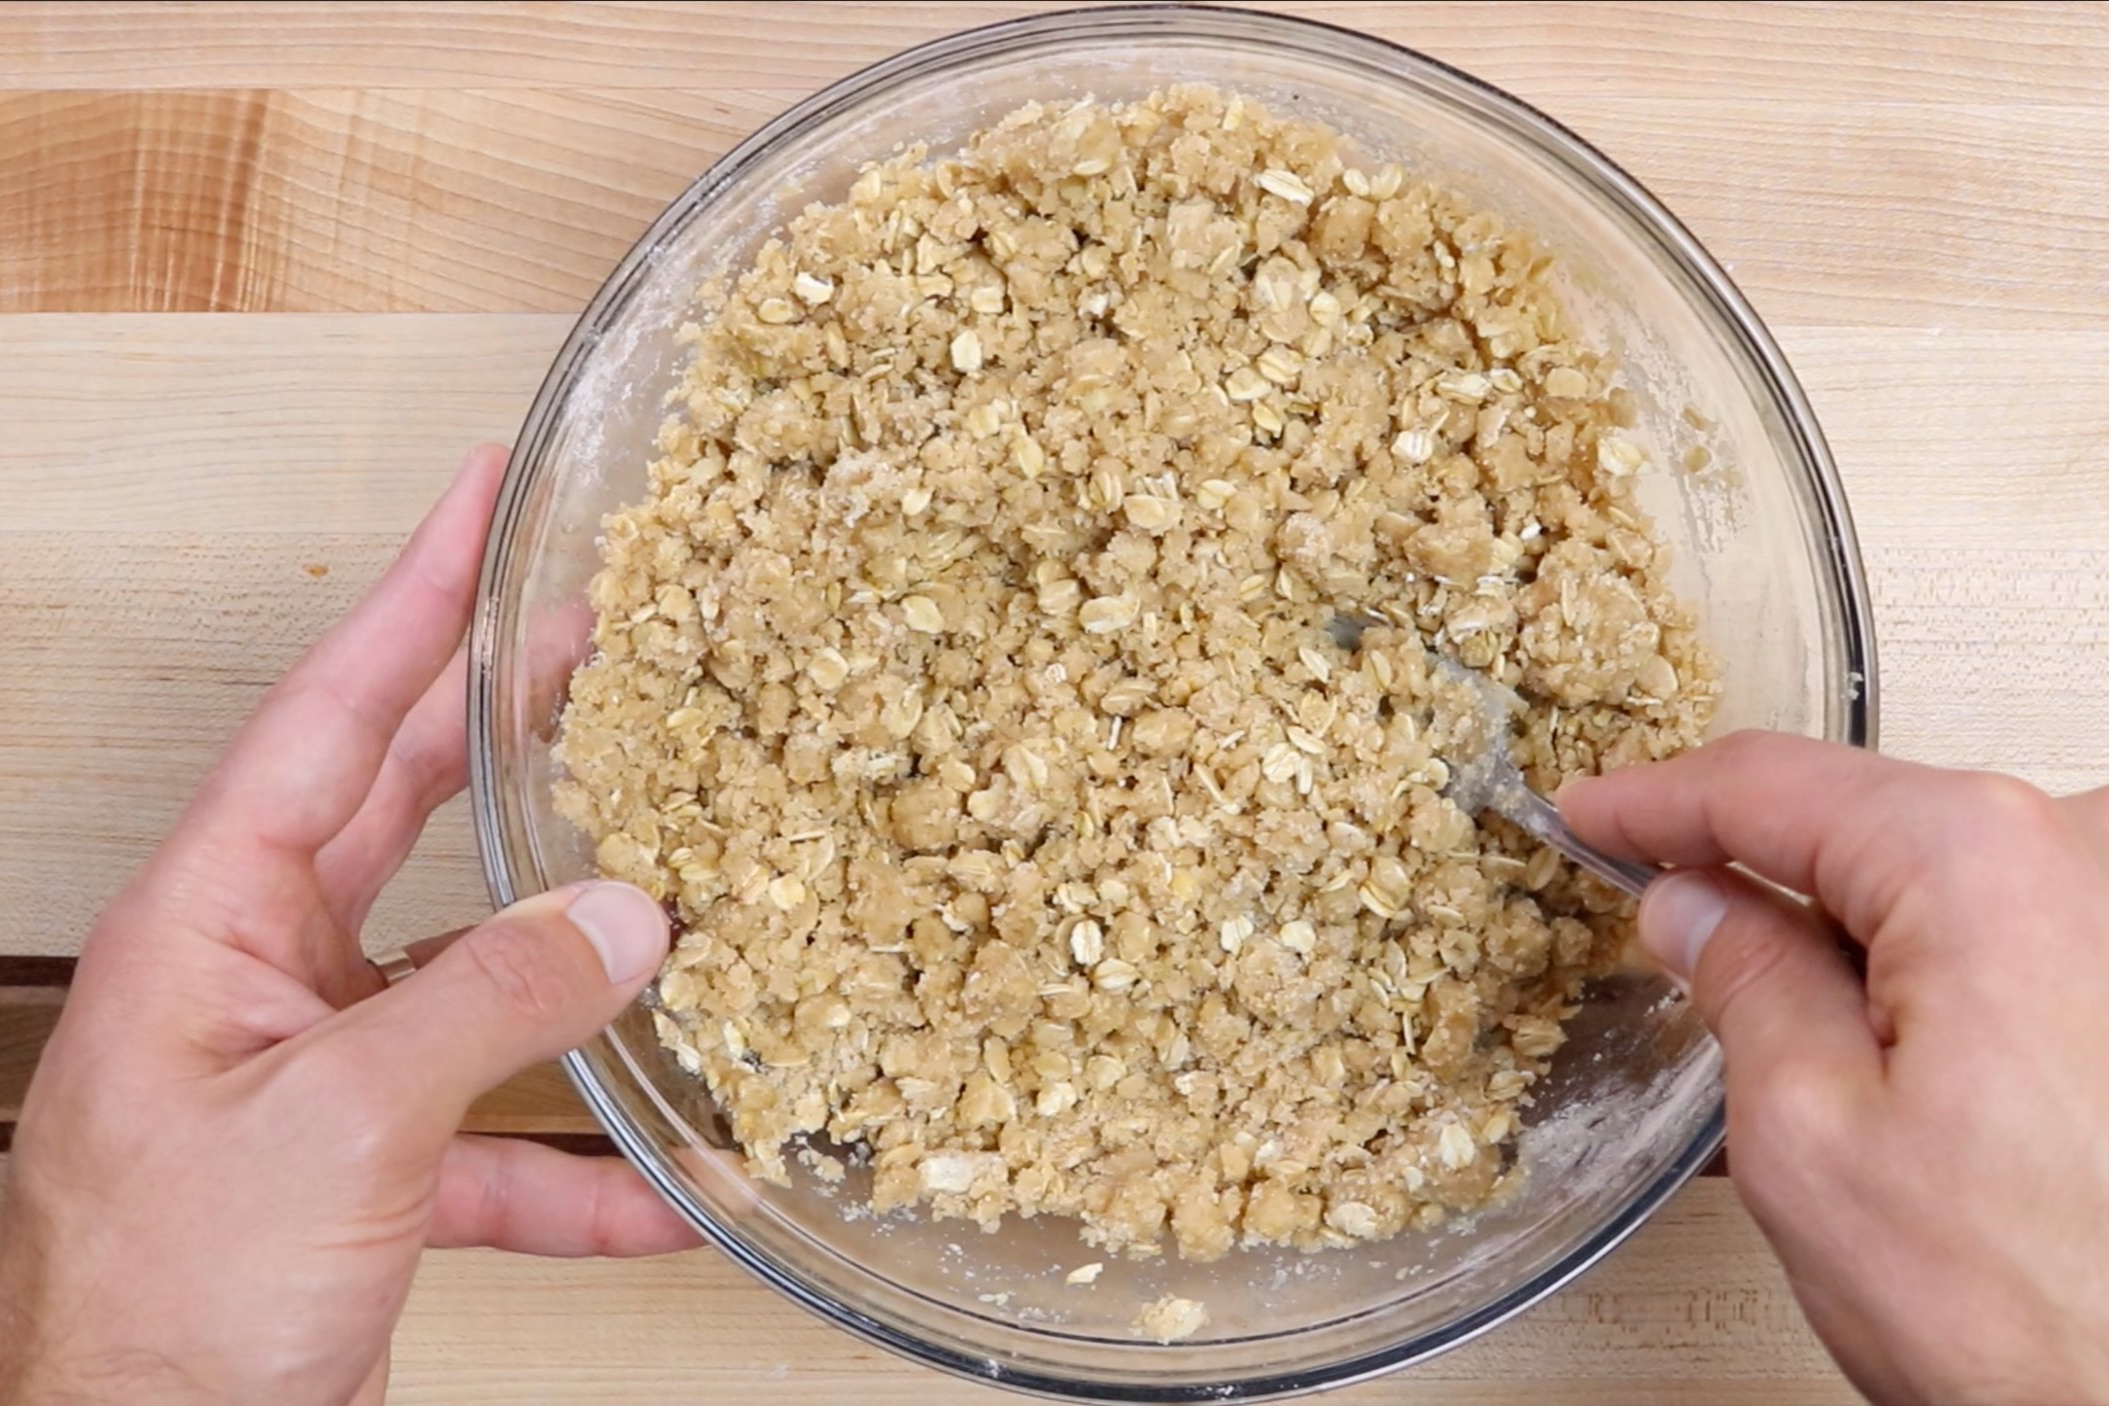 3. Add the melted butter and vanilla. Mix together with a fork or a pastry cutter into a crumble-like mixture. -